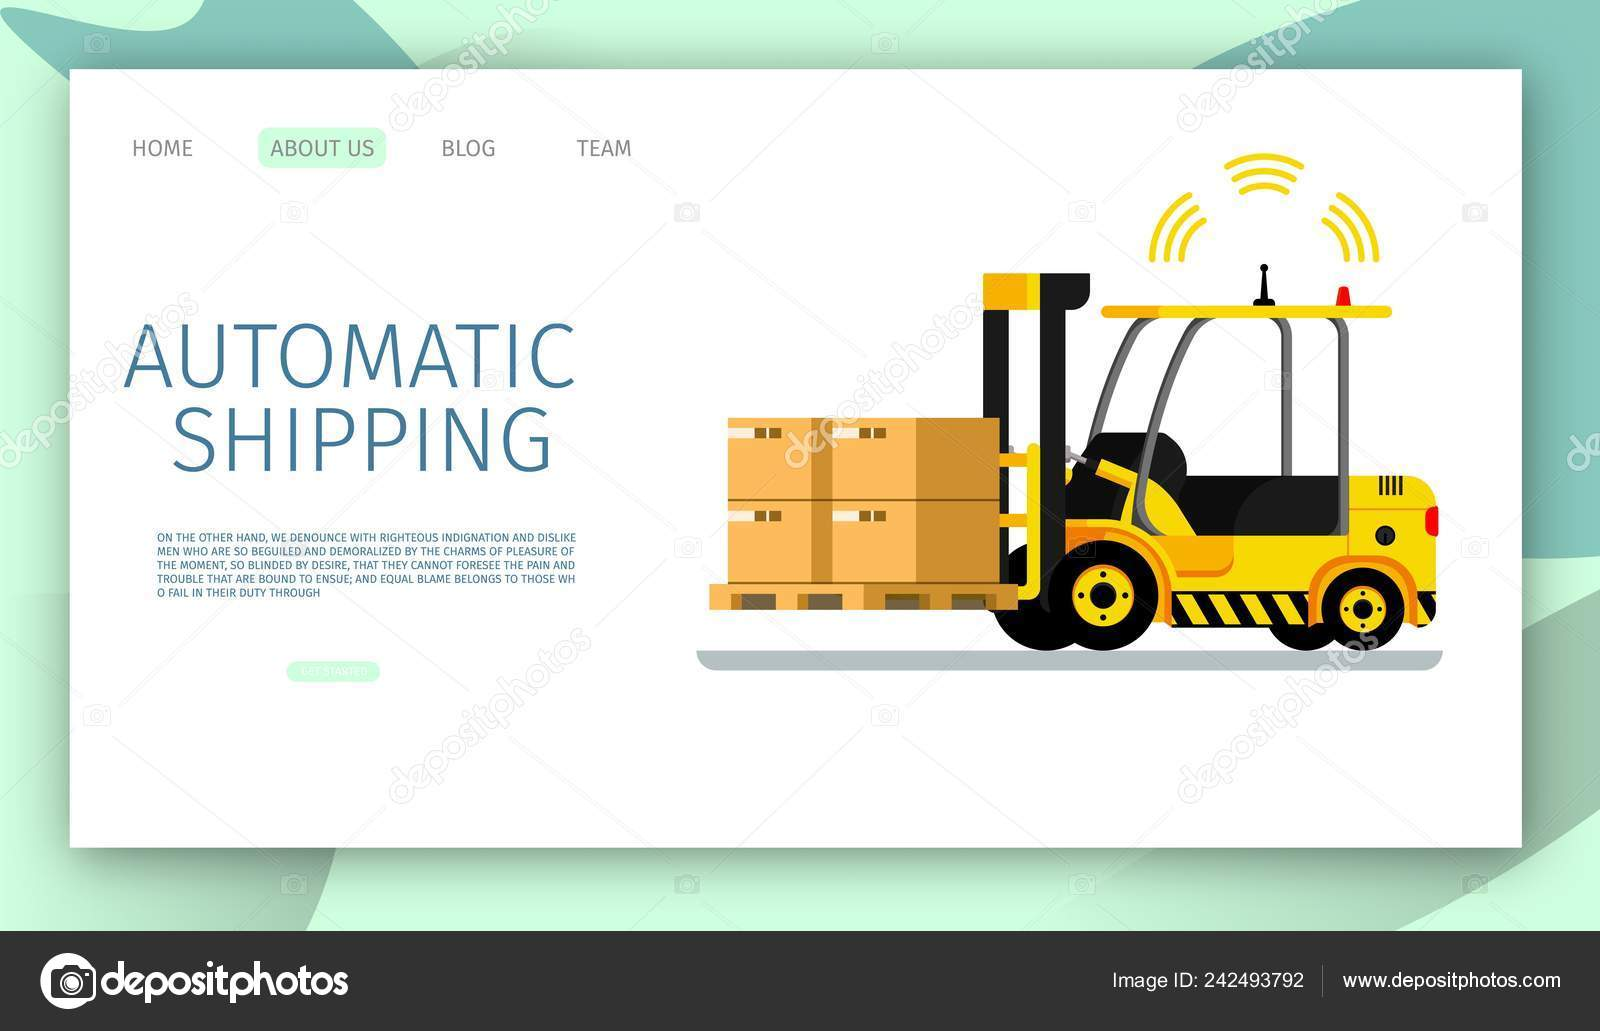 Shipping A Car/page/2 >> Automatic Shipping Car Lifting Warehouse Cargo Safe Signal